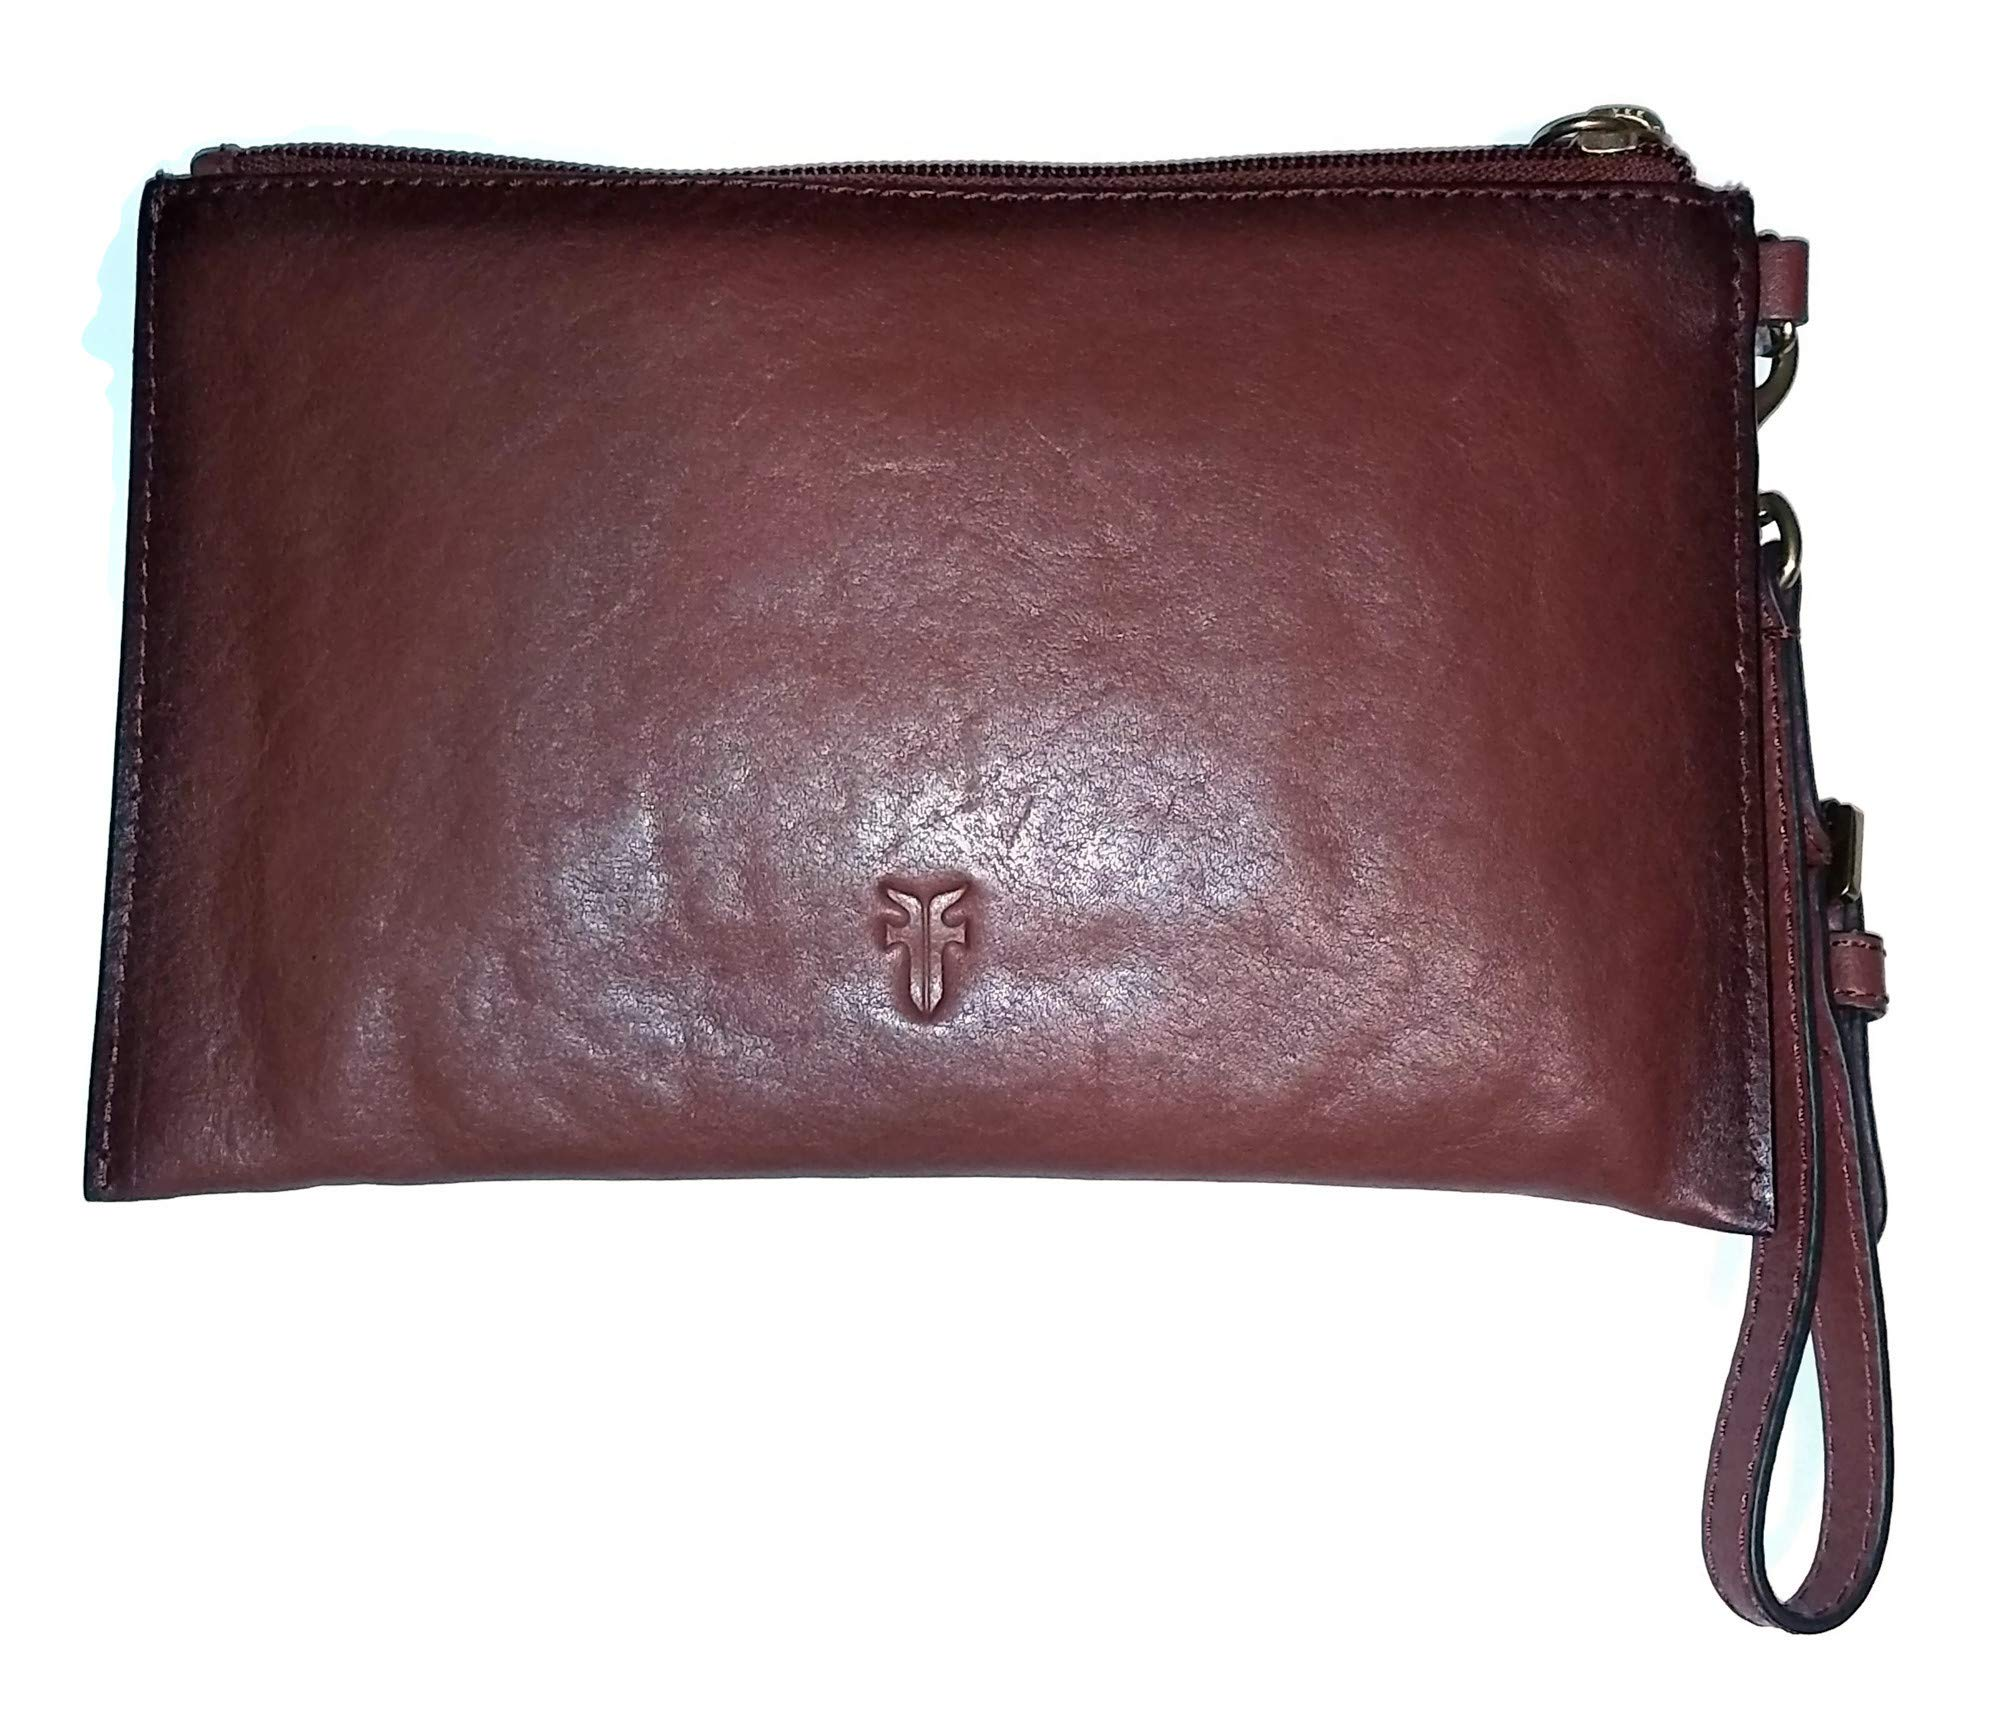 FRYE Wristlet DB0625 Smooth Leather Cognac/Brown Small